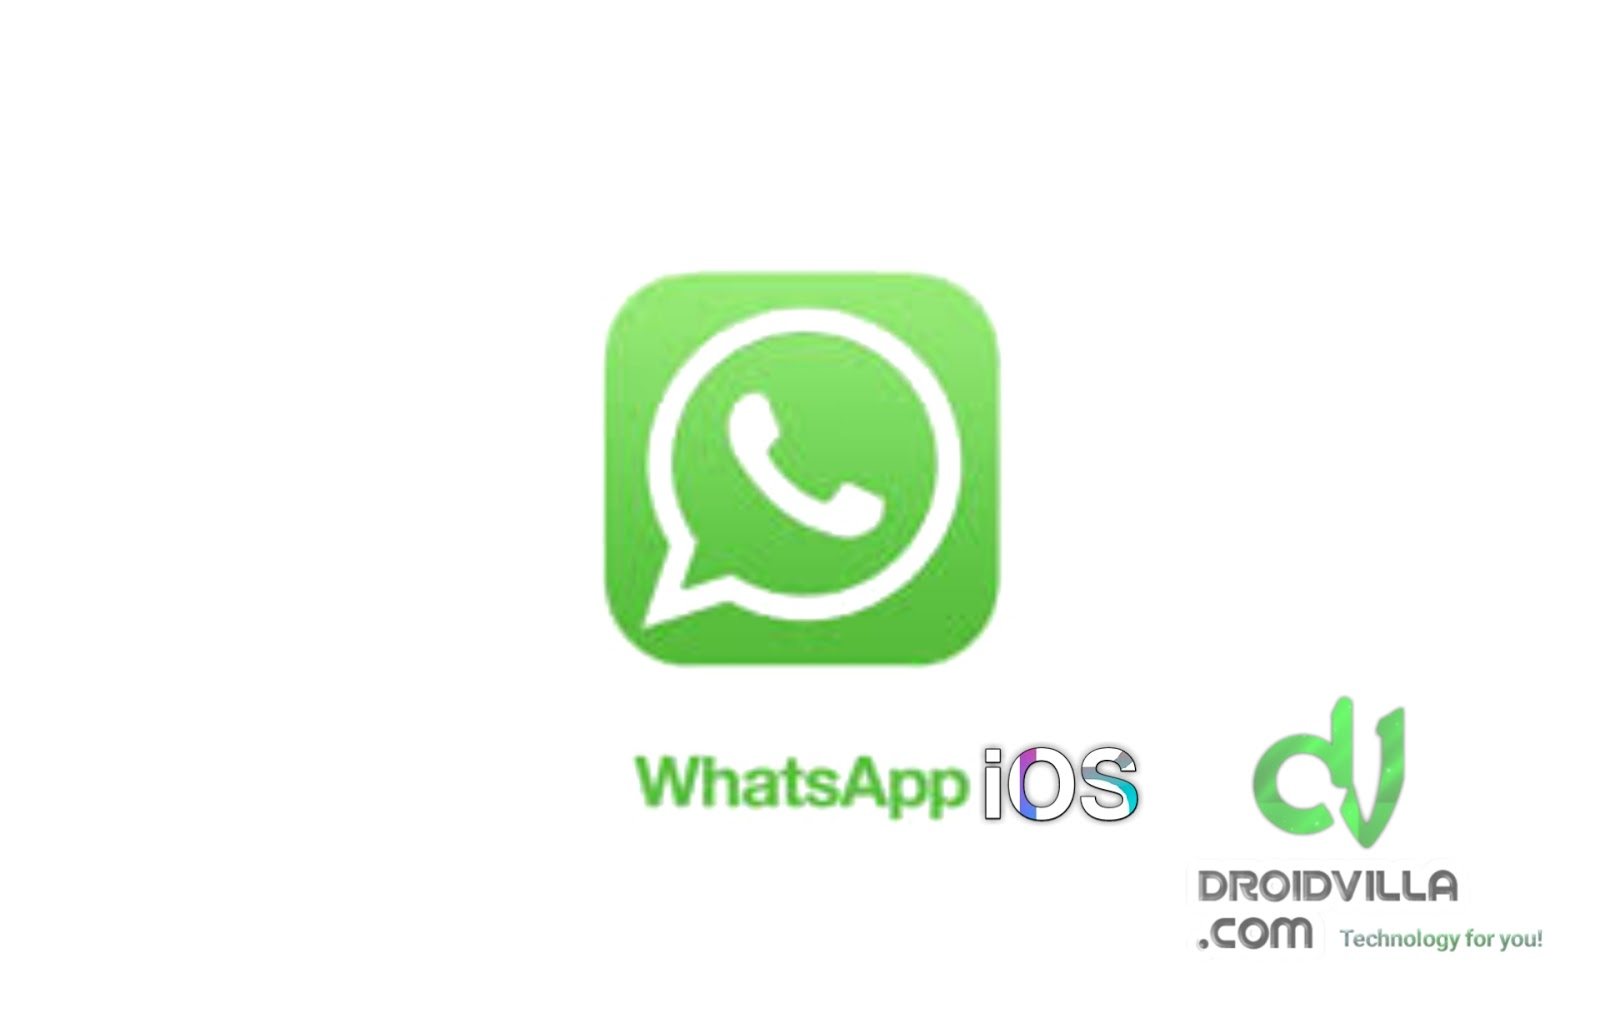 WhatsApp update adds new features for iPhone users